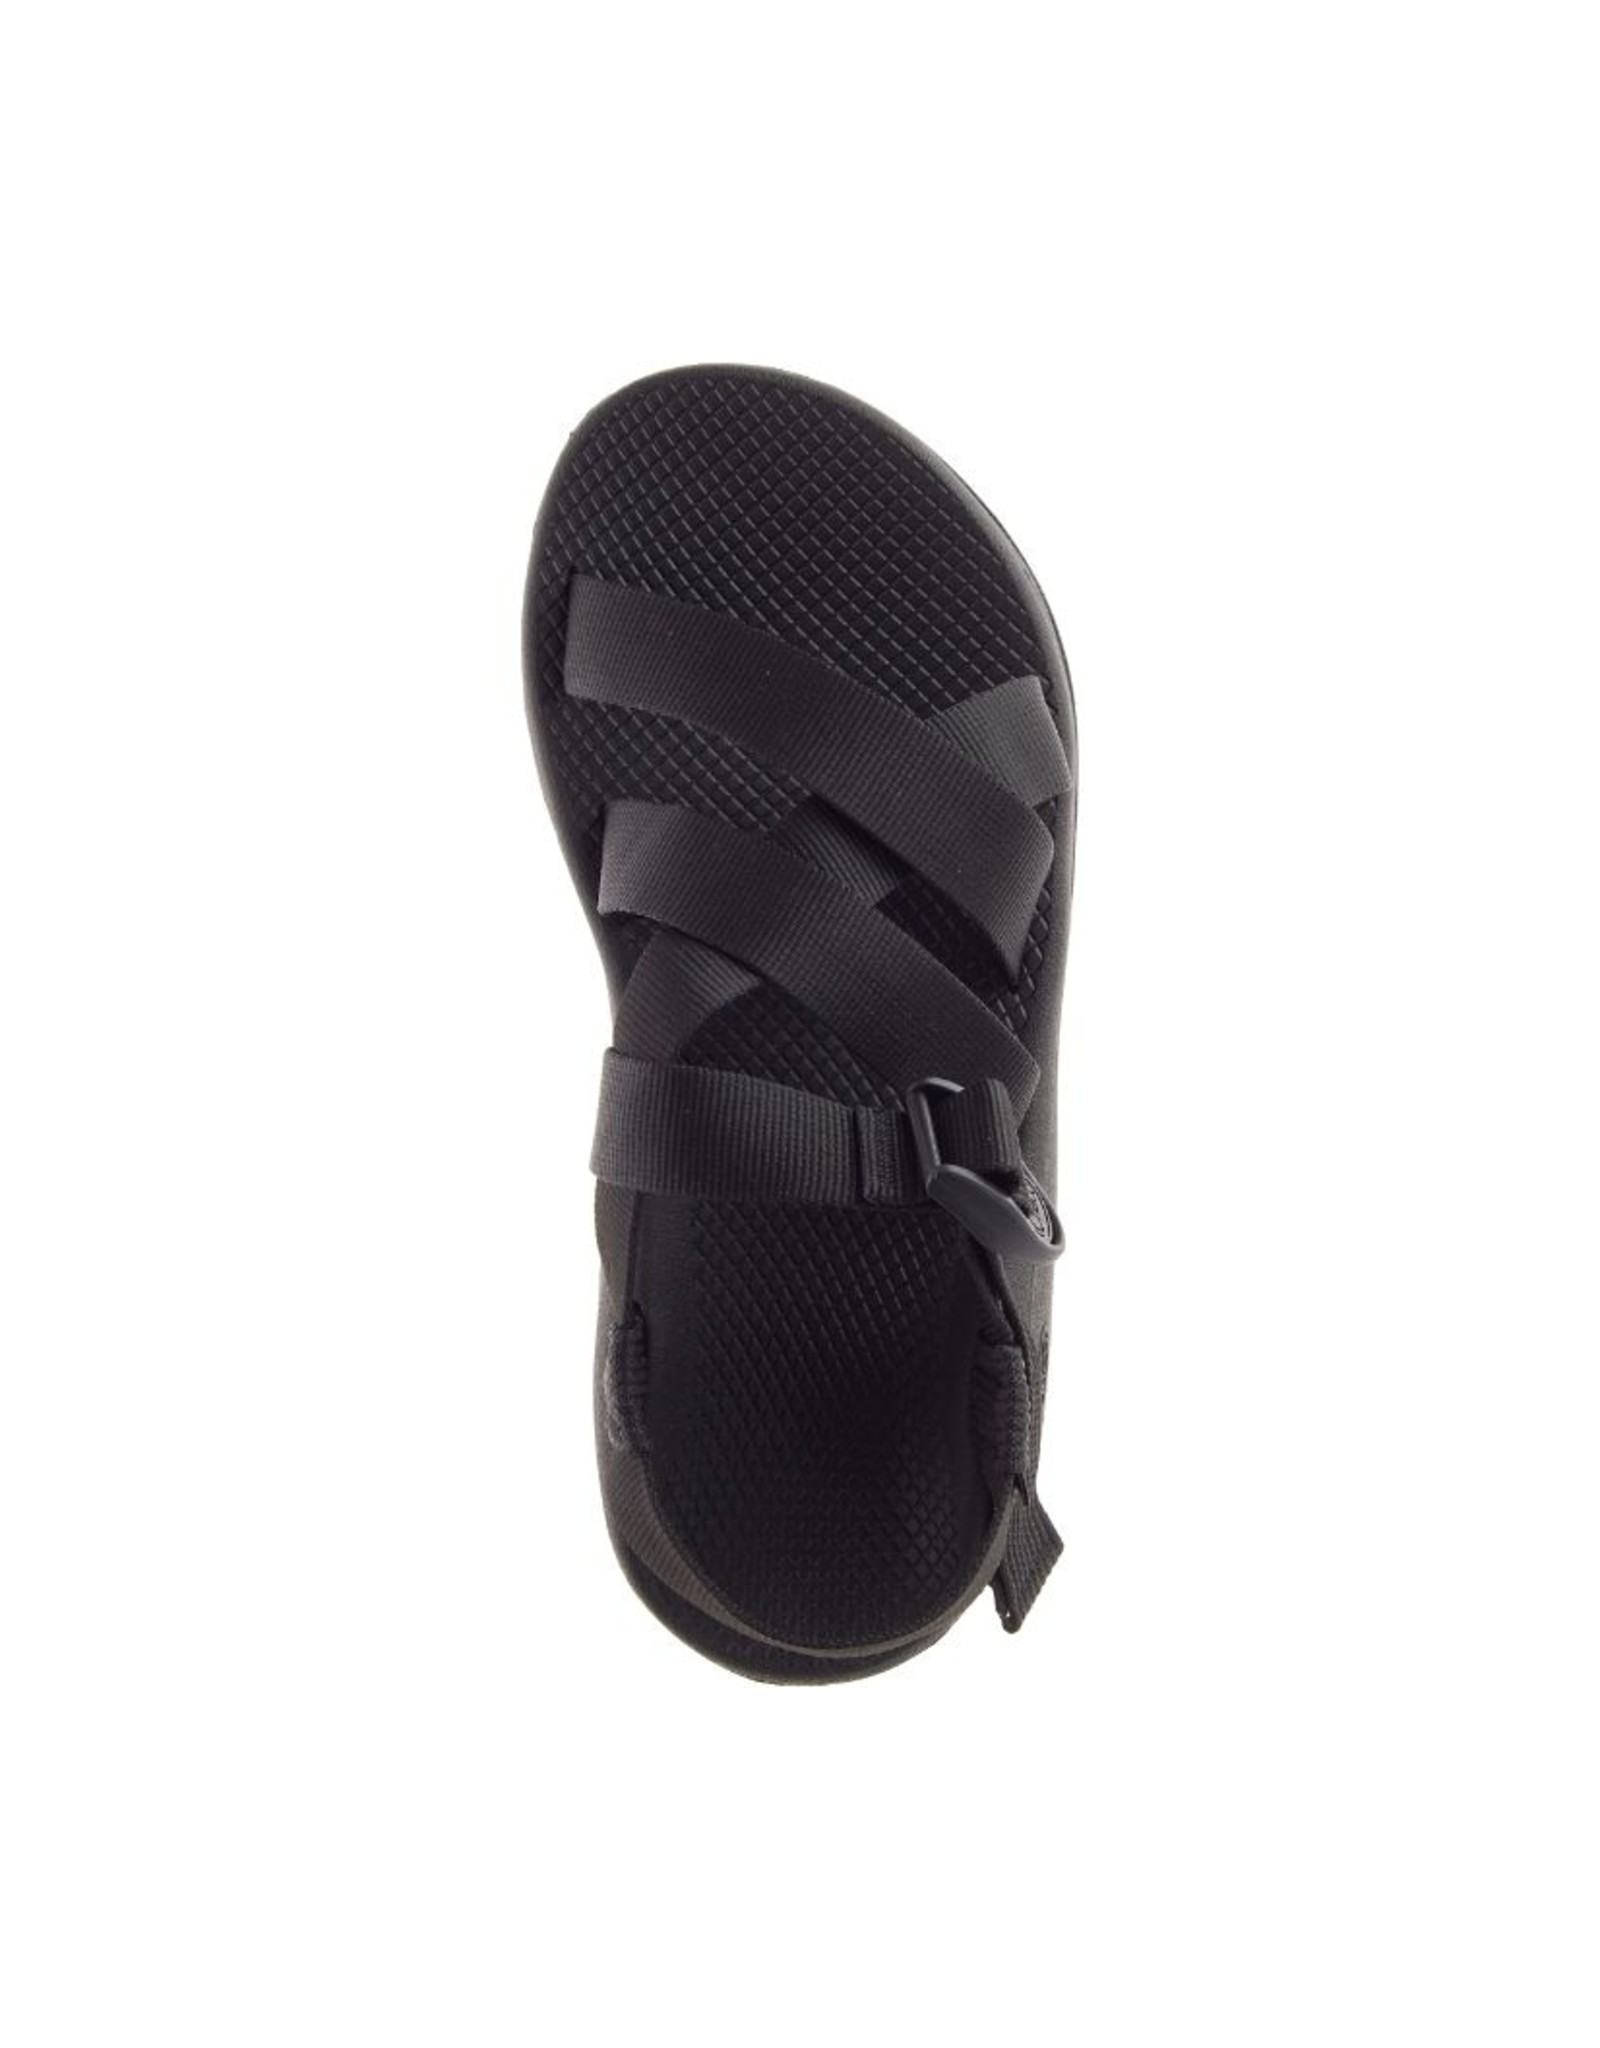 CHACO MEN'S BANDED Z CLOUD-SOLID BLACK